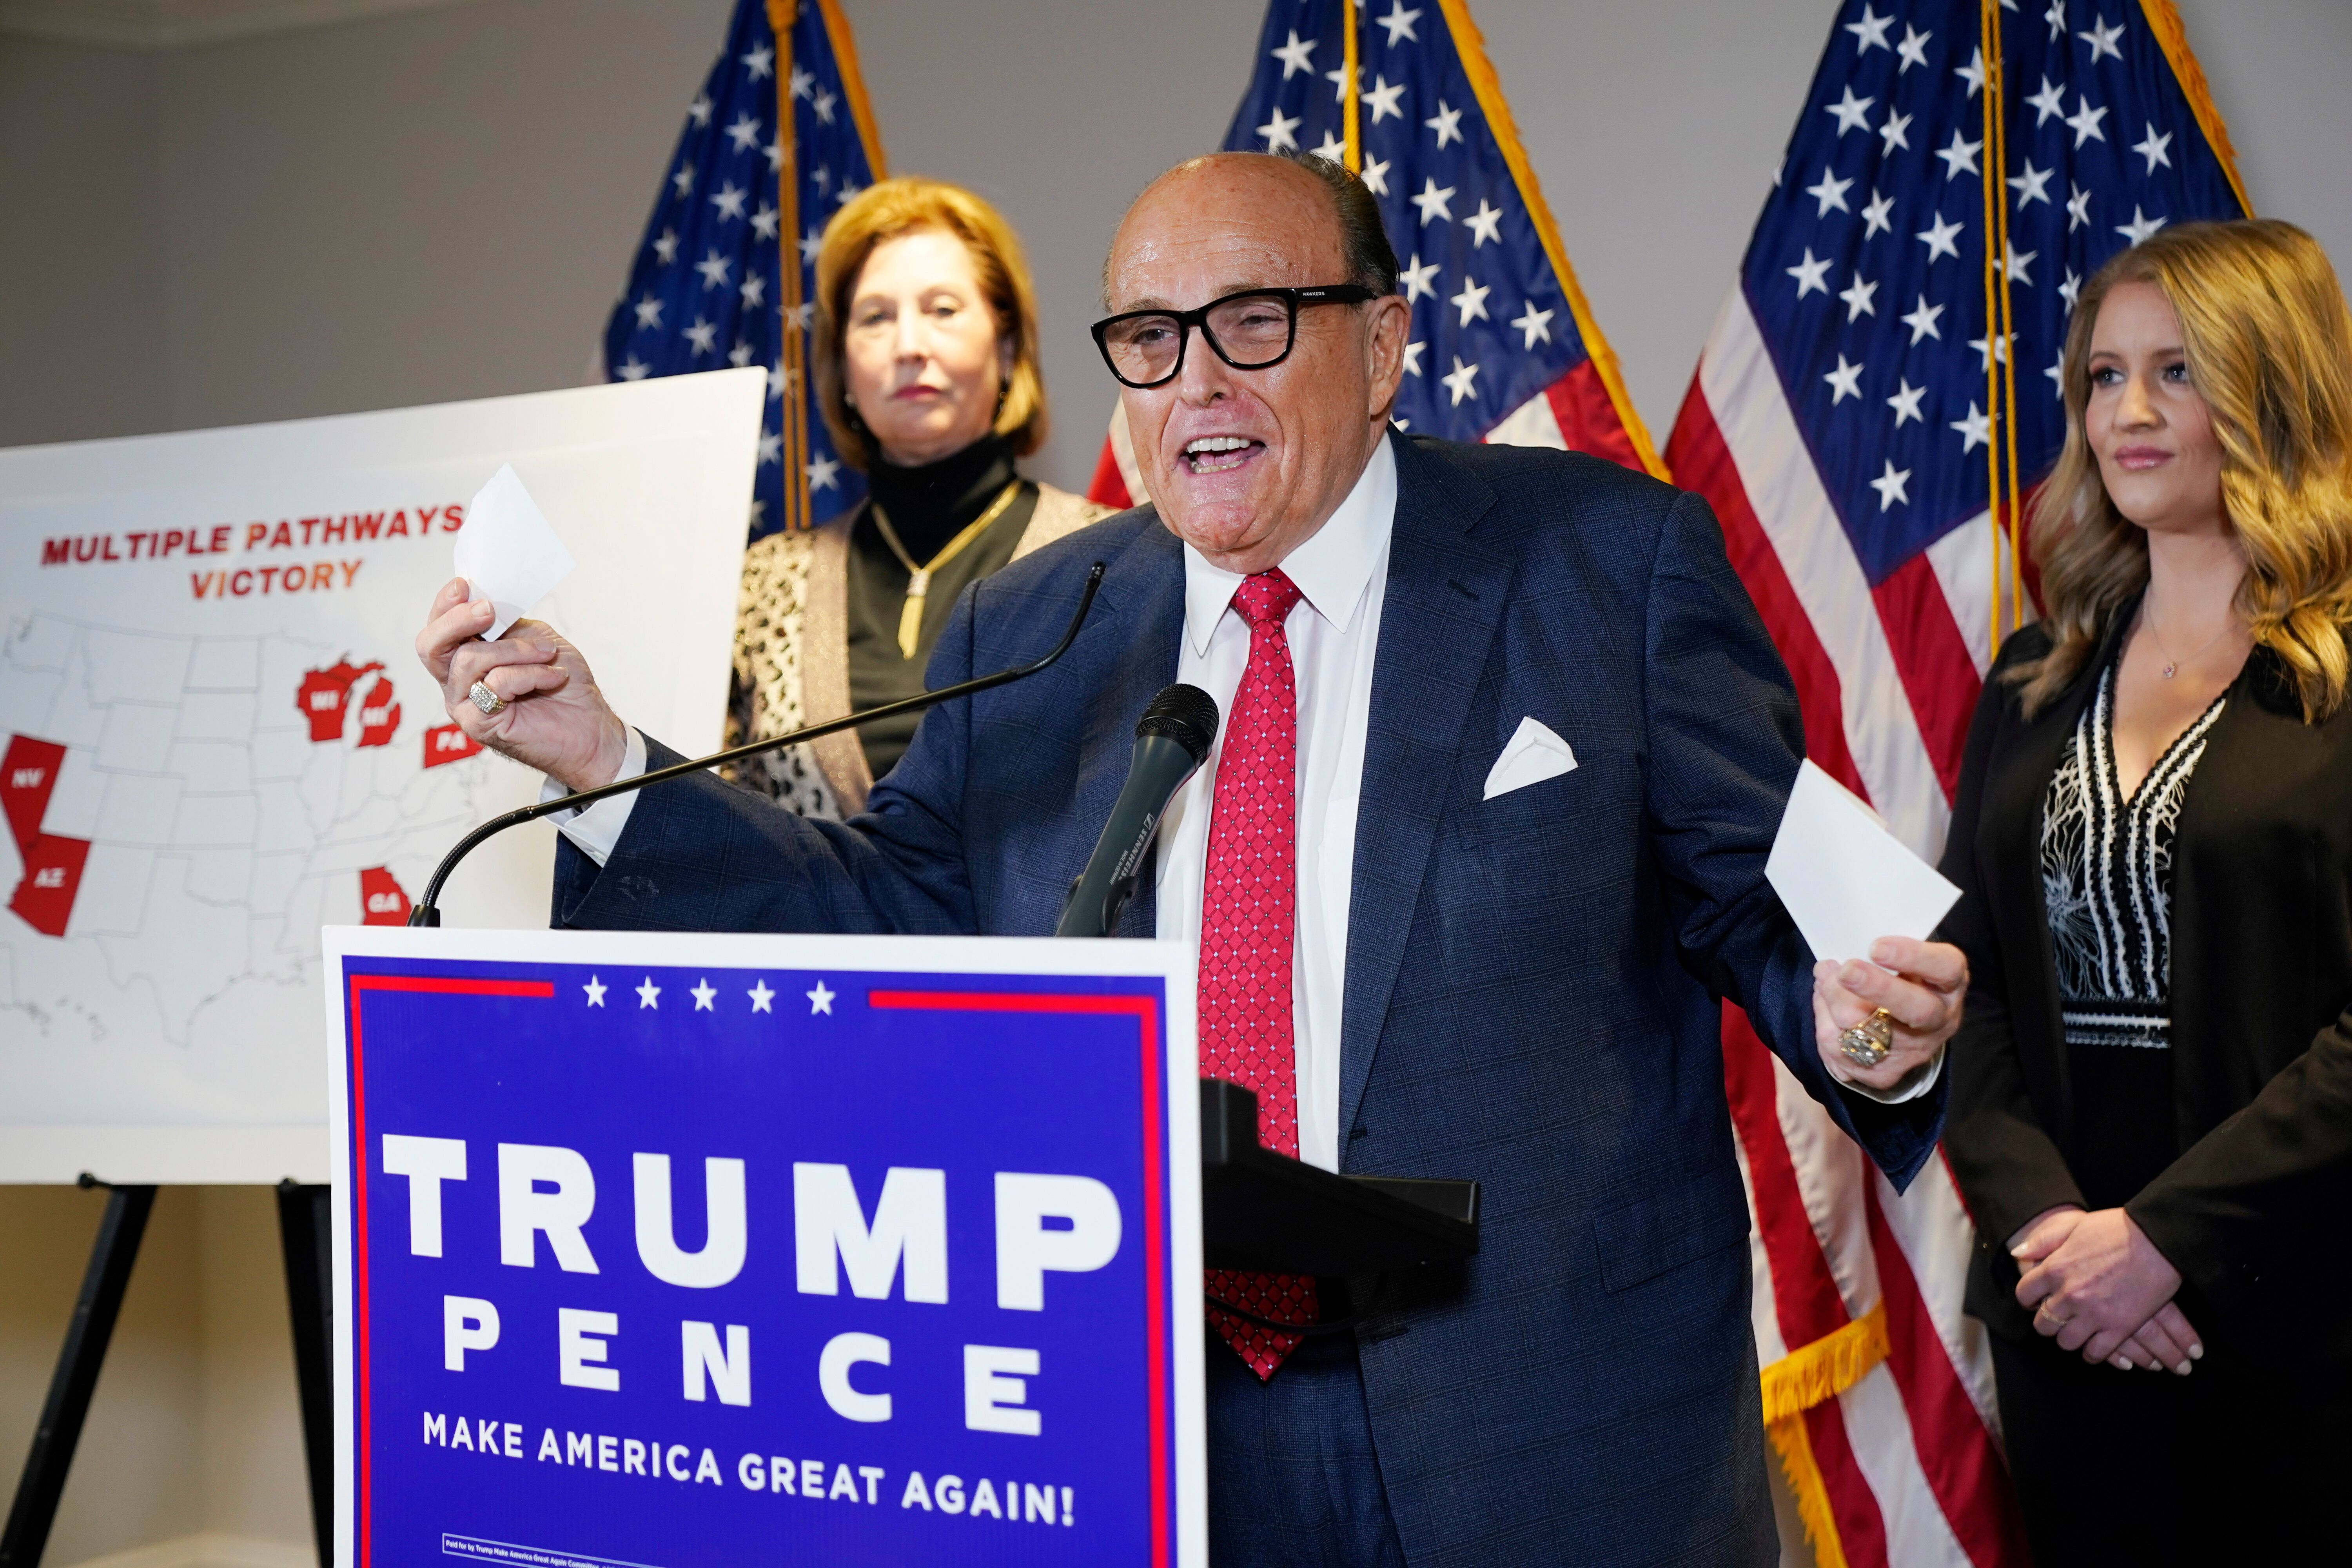 Former Mayor of New York Rudy Giuliani, a lawyer for President Donald Trump, speaks during a news conference at the Republica